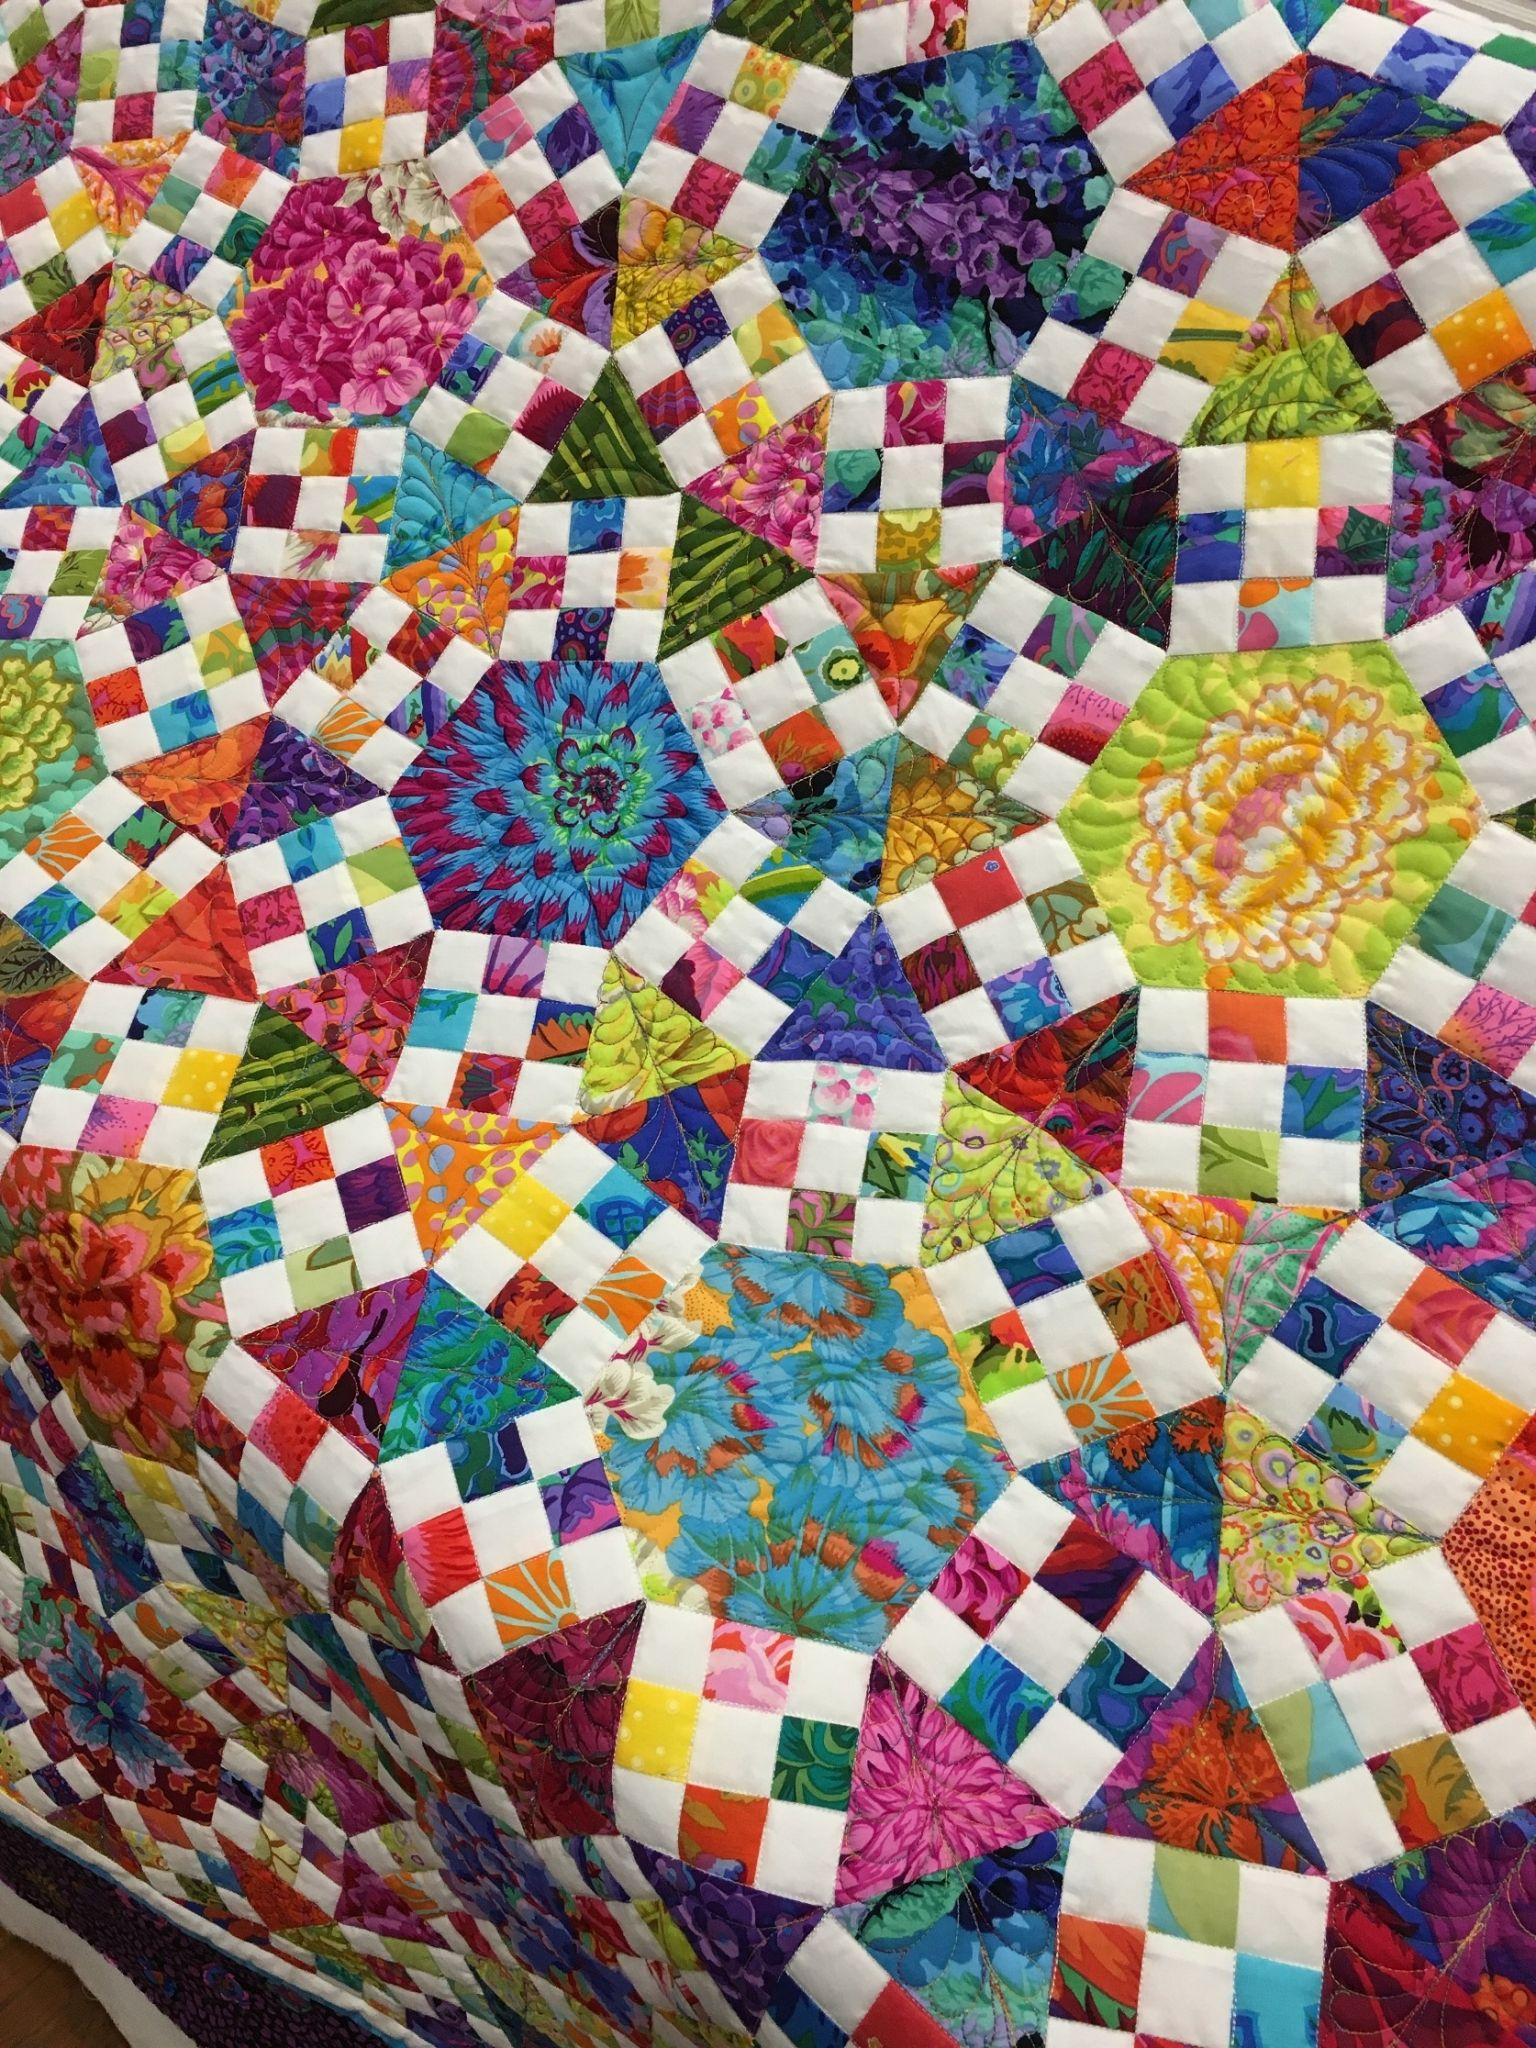 Quilt Guild's annual event brings a little joy to the world ... : houston quilt guild - Adamdwight.com